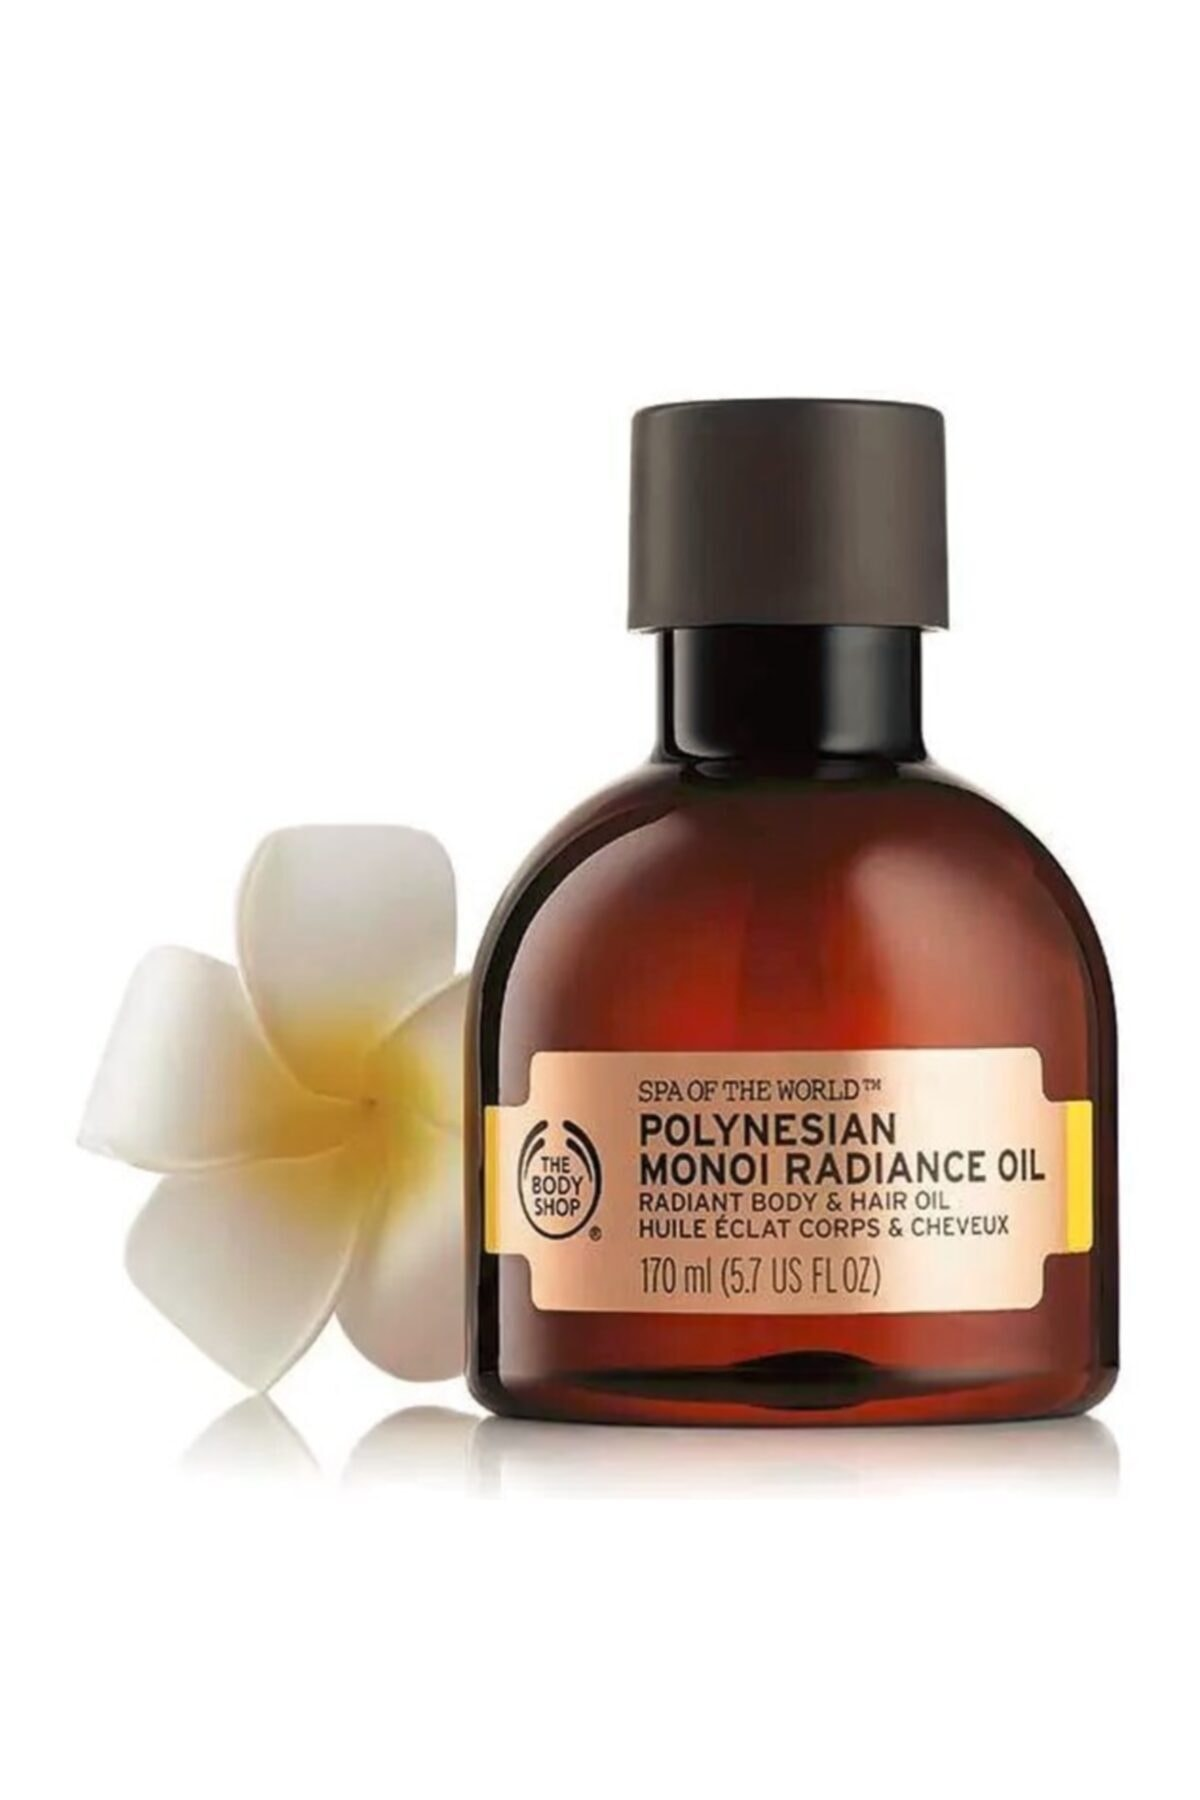 THE BODY SHOP Spa Of The World Polynesian Monoi Saç Ve Vücut Yağı 170ml 2